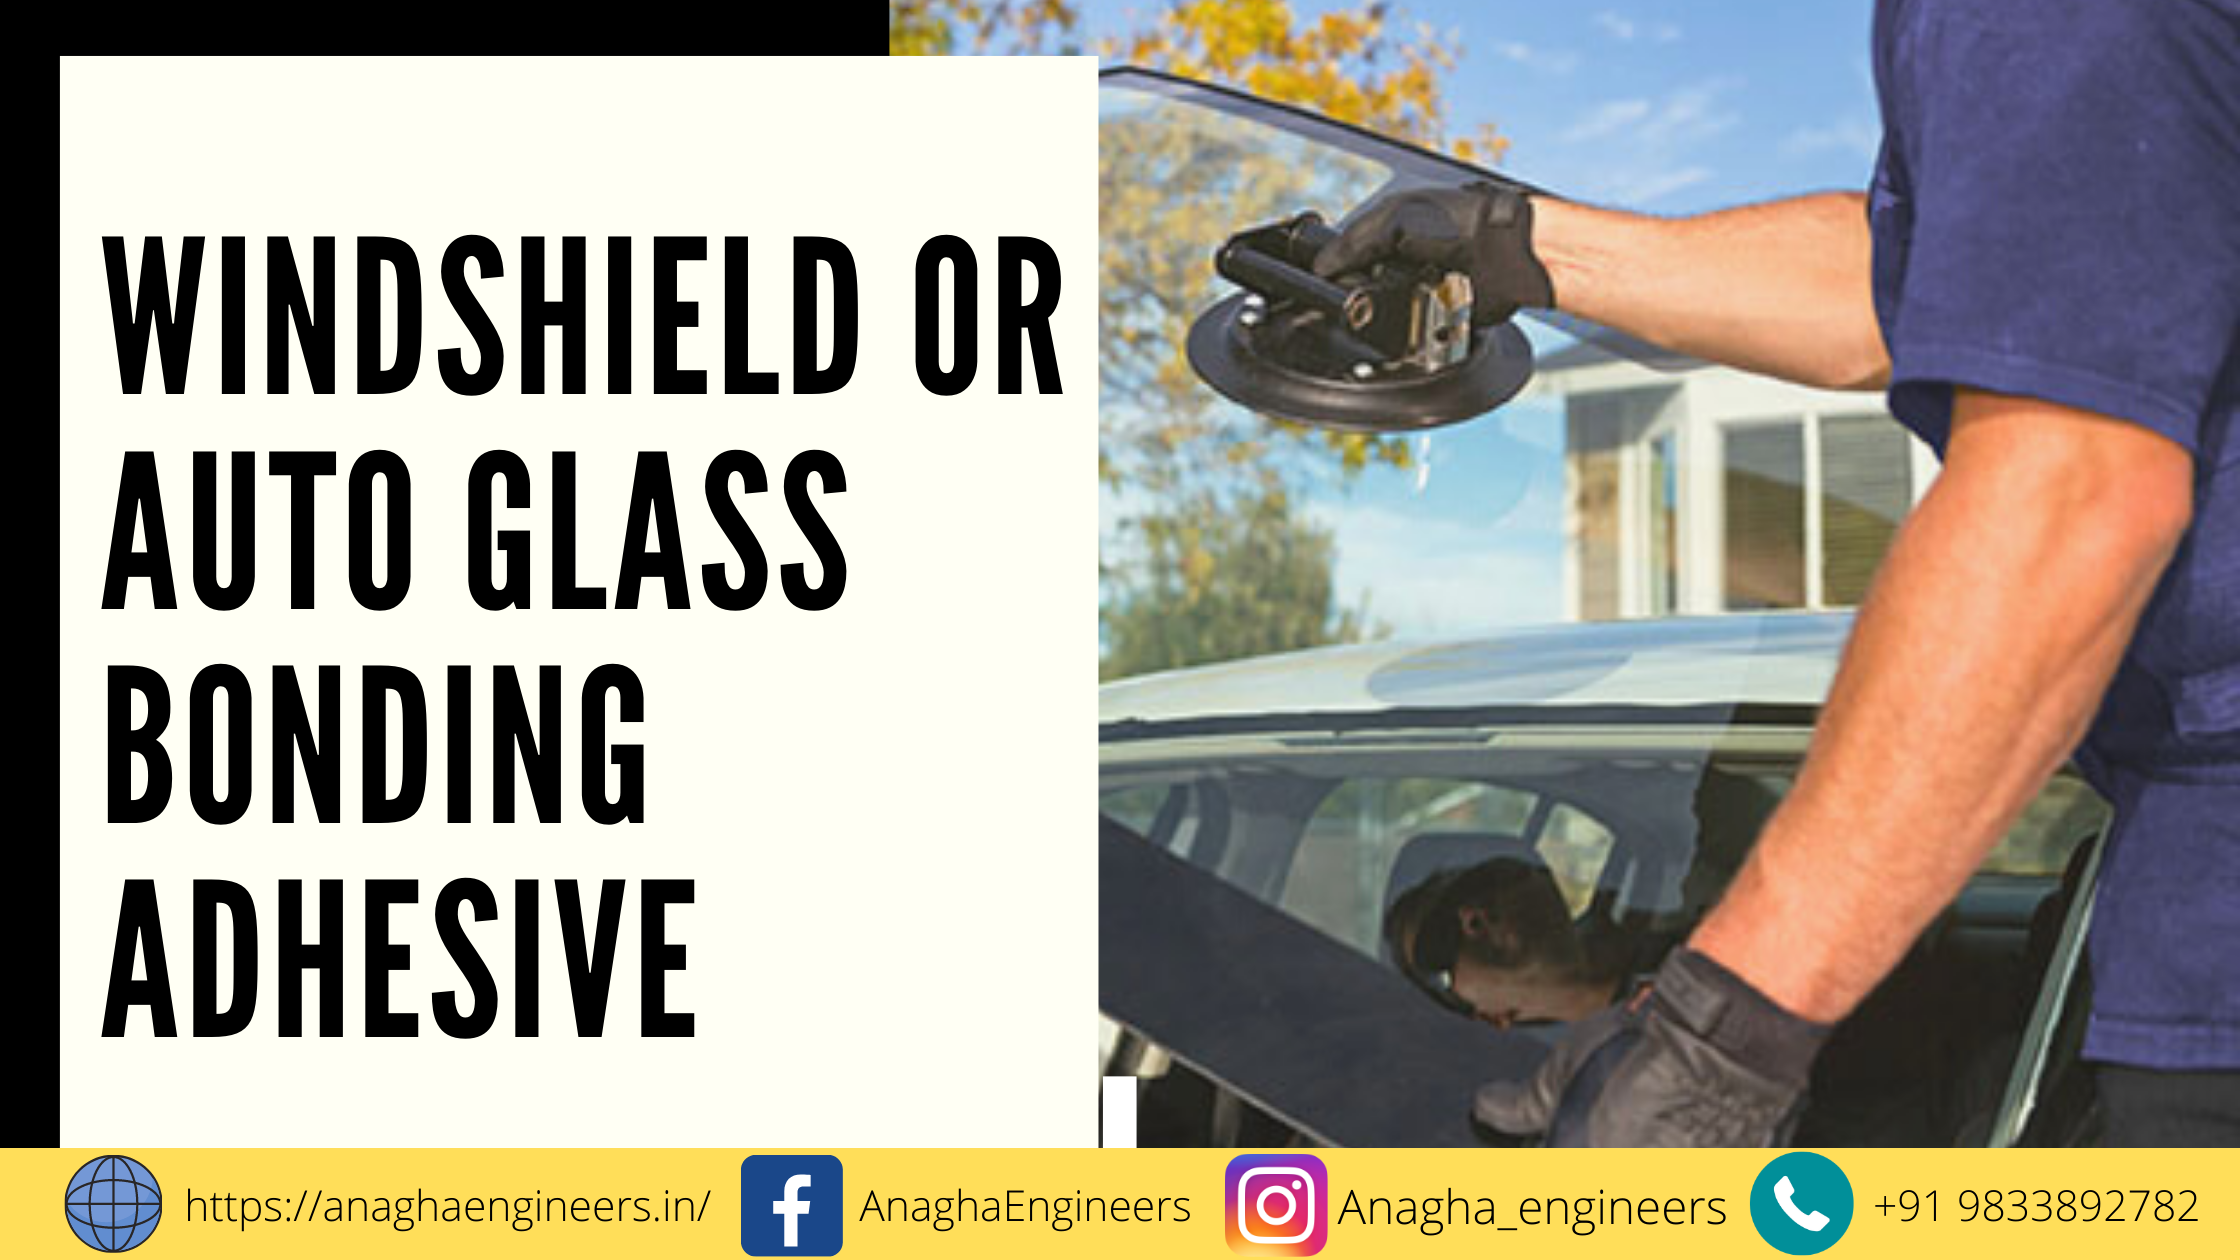 Types of adhesives for windshields, glass to metal